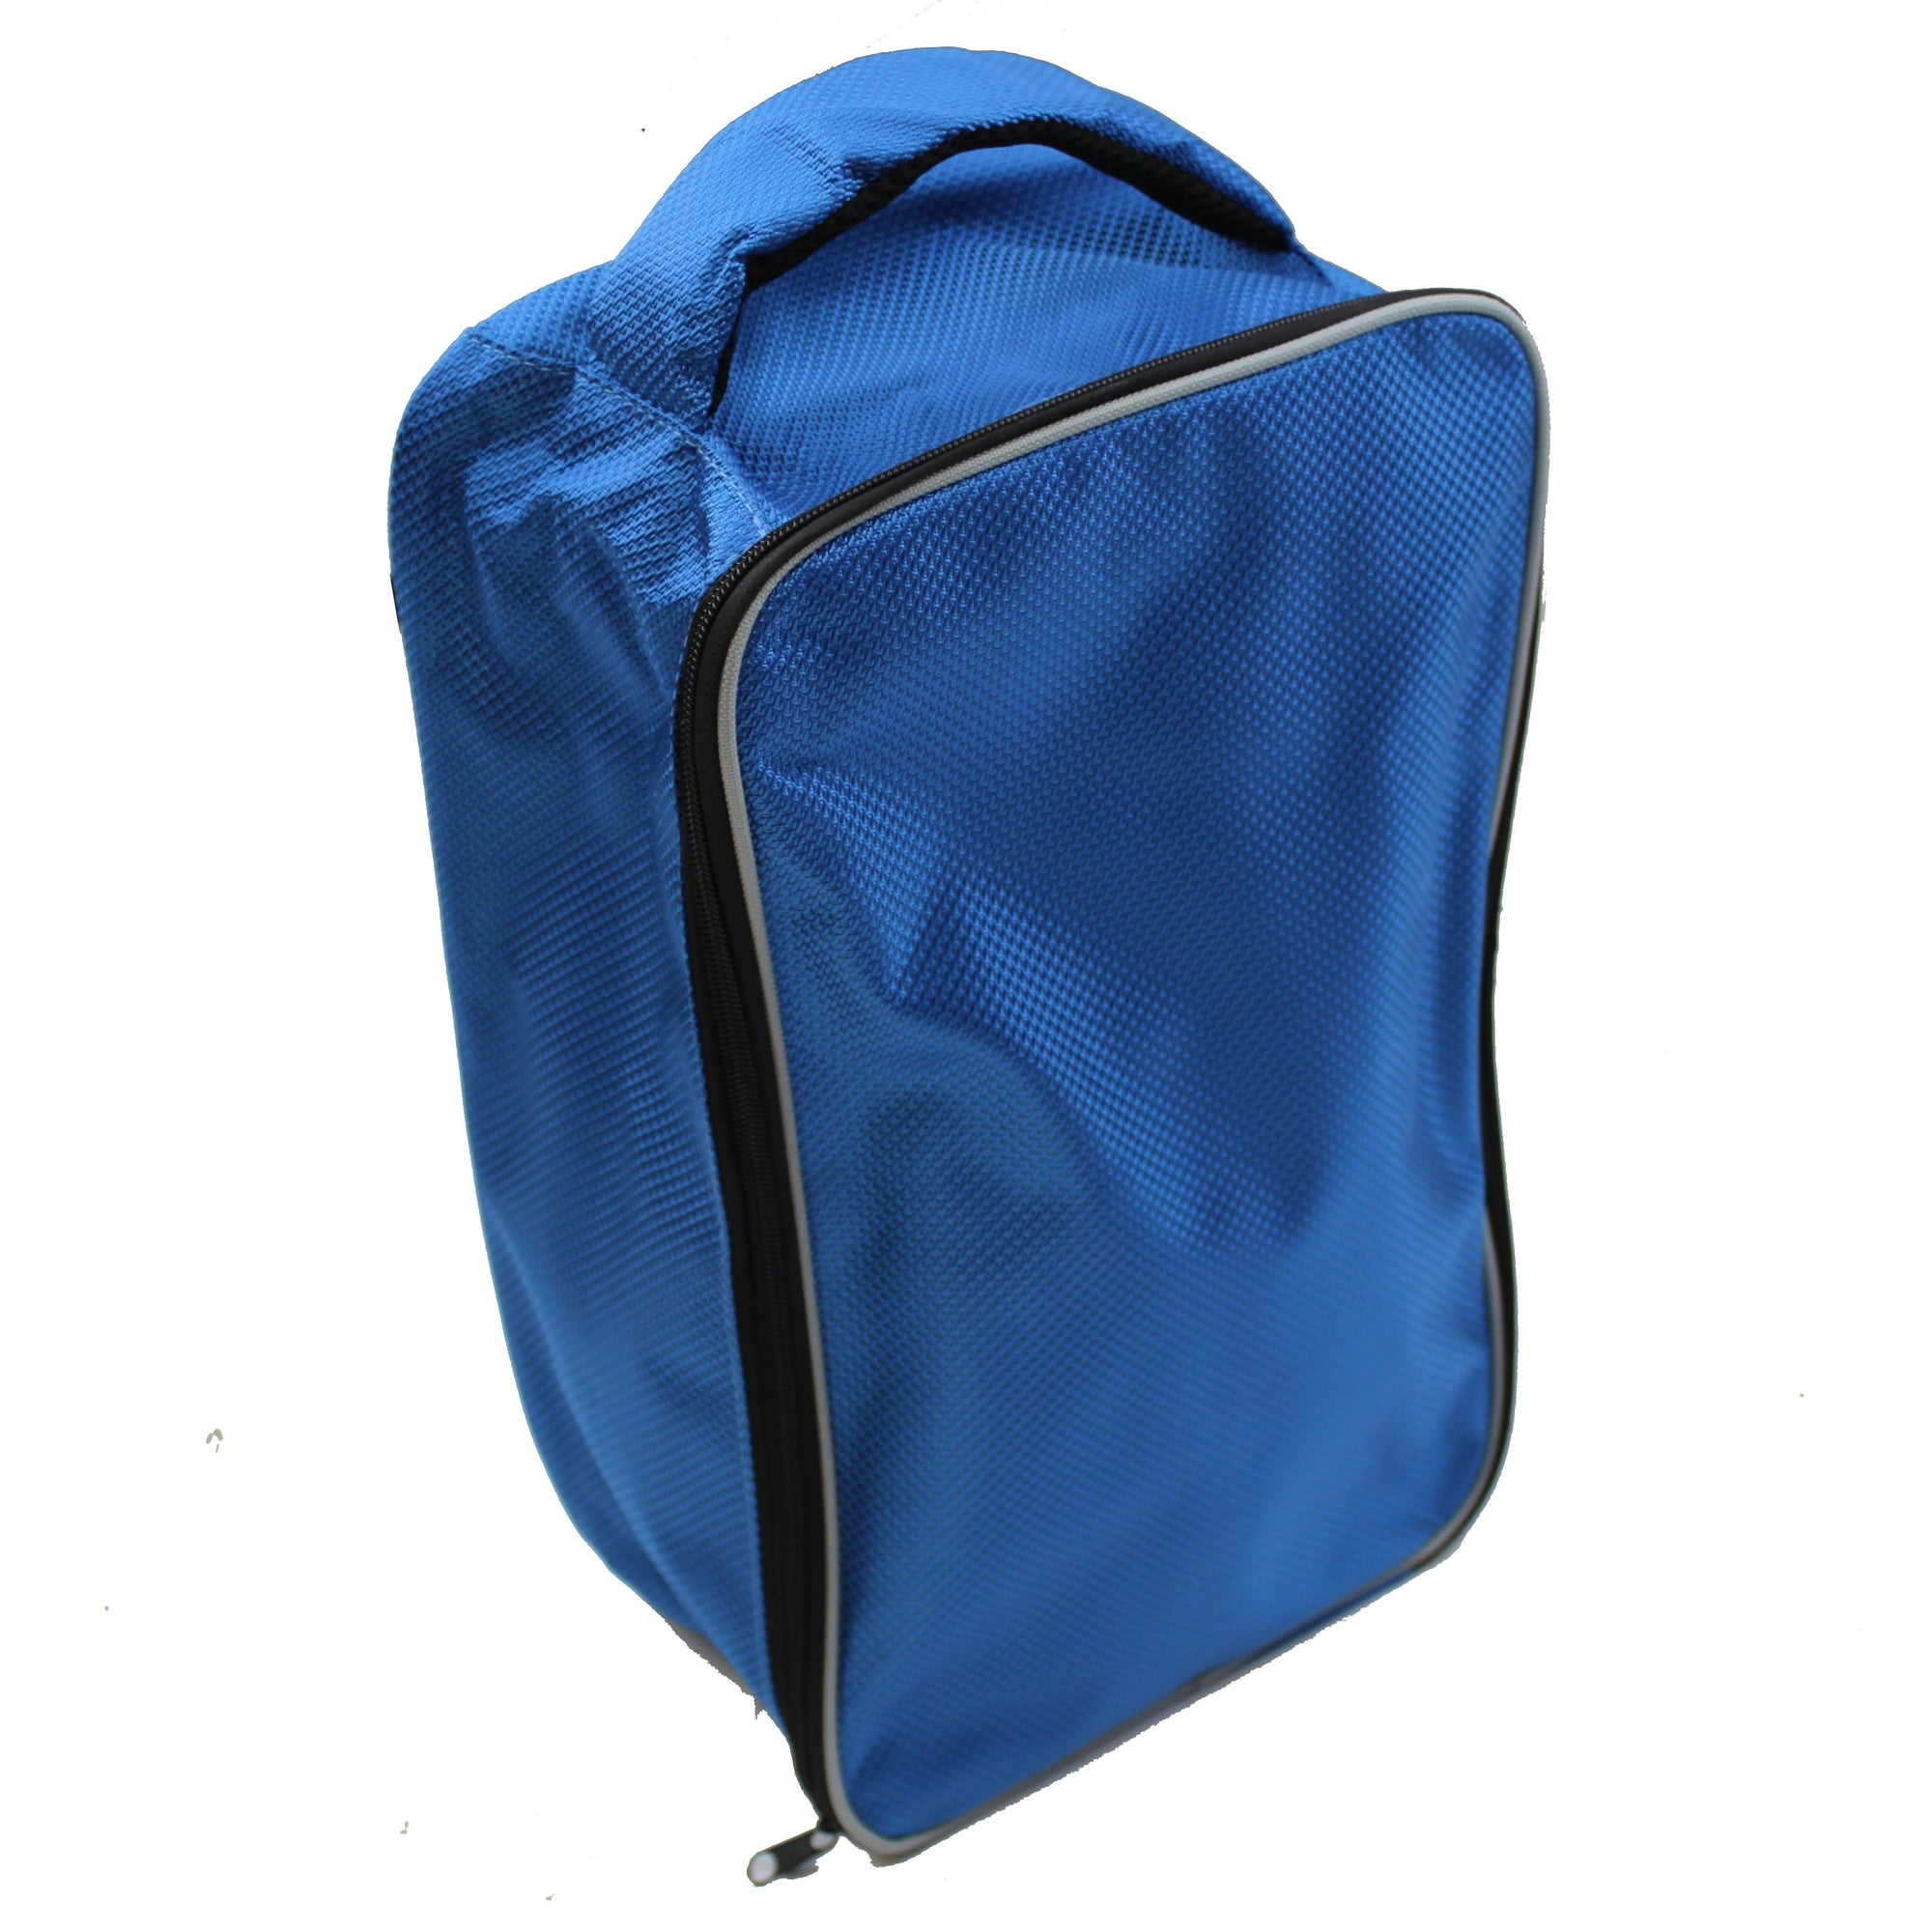 Druids Golf - Corporate Shoe Bag (Blue)